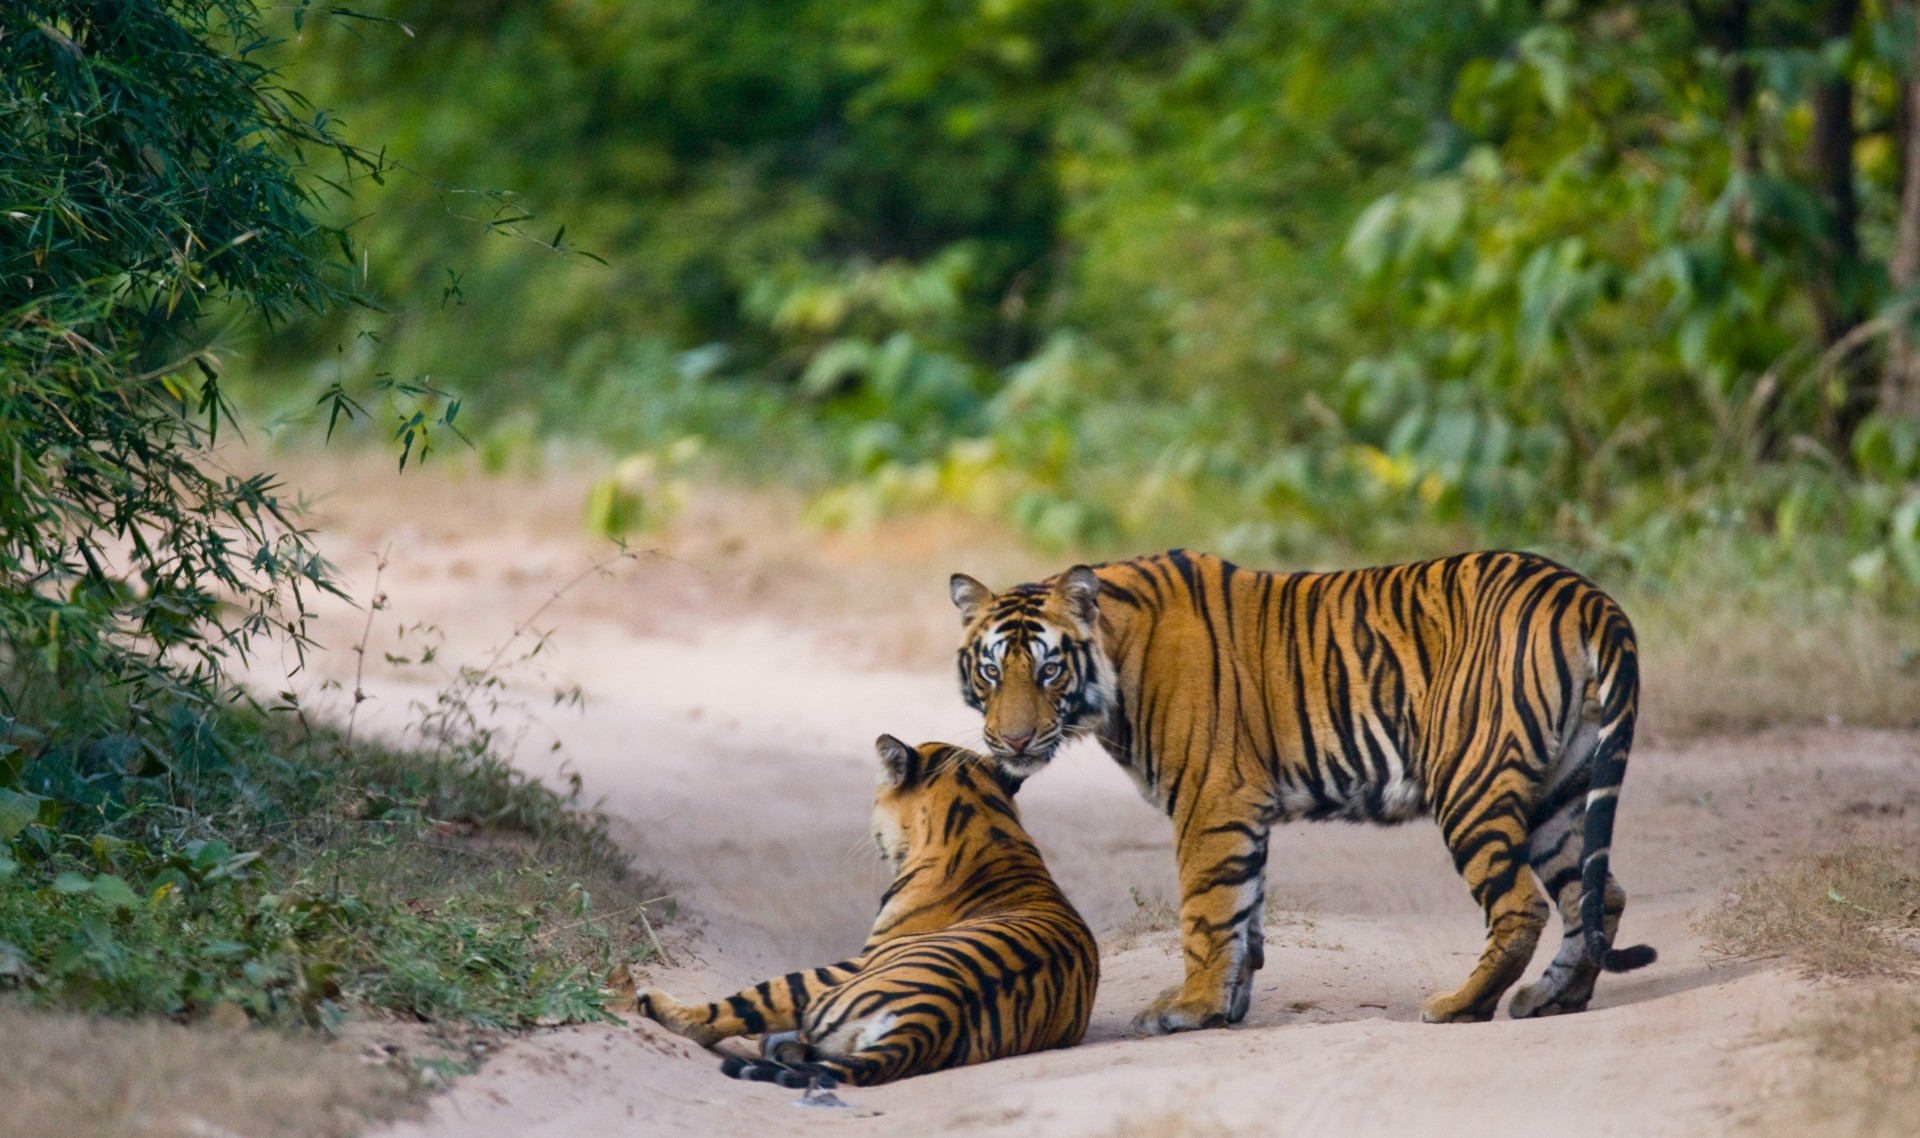 Tigers in Bandhavgarh National Park India